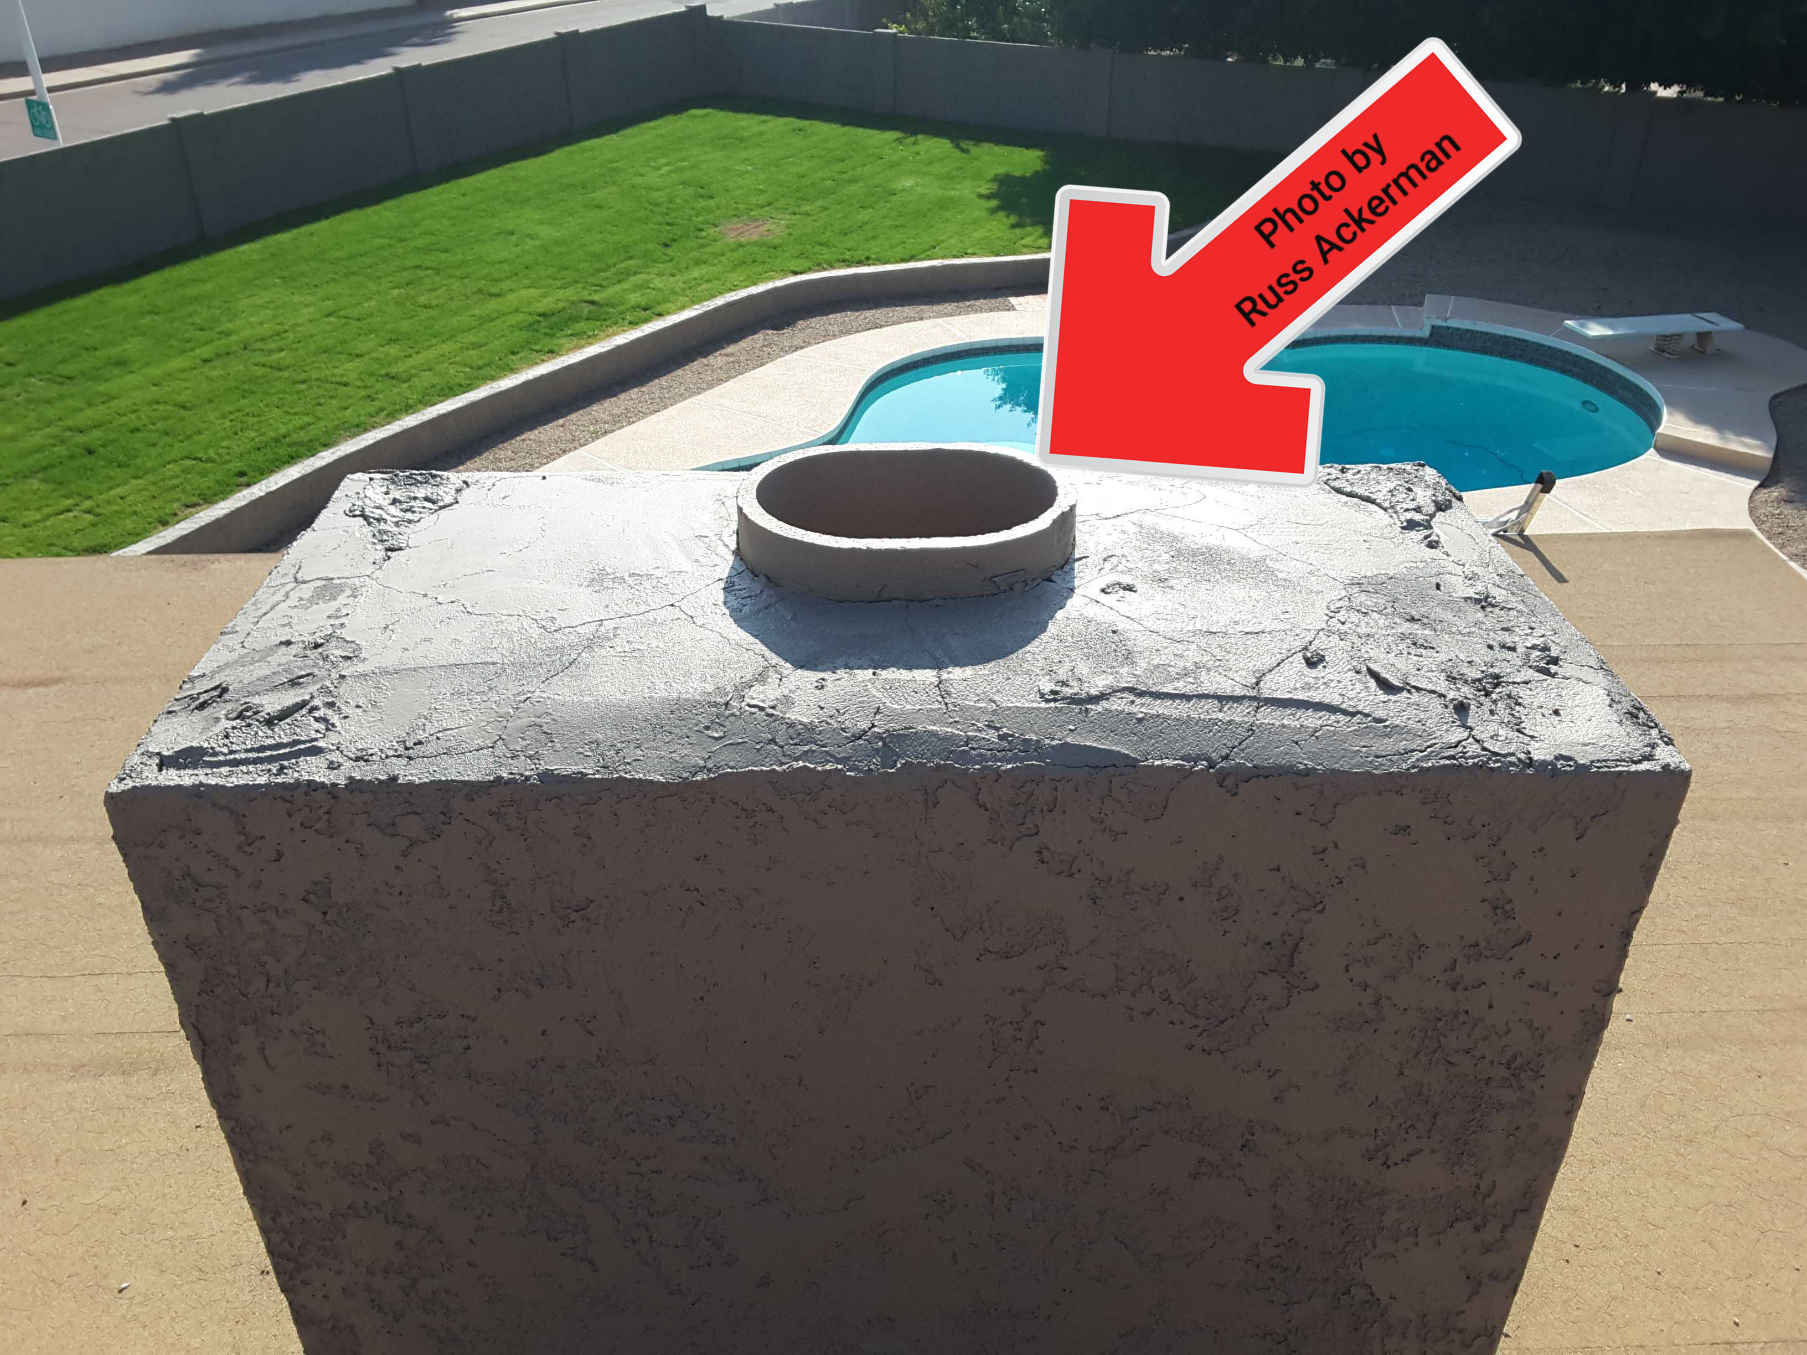 A screened whether cap is needed at this chimney flue. This will keep water out, reduce the spread of fires and keep animals from nesting inside flue.